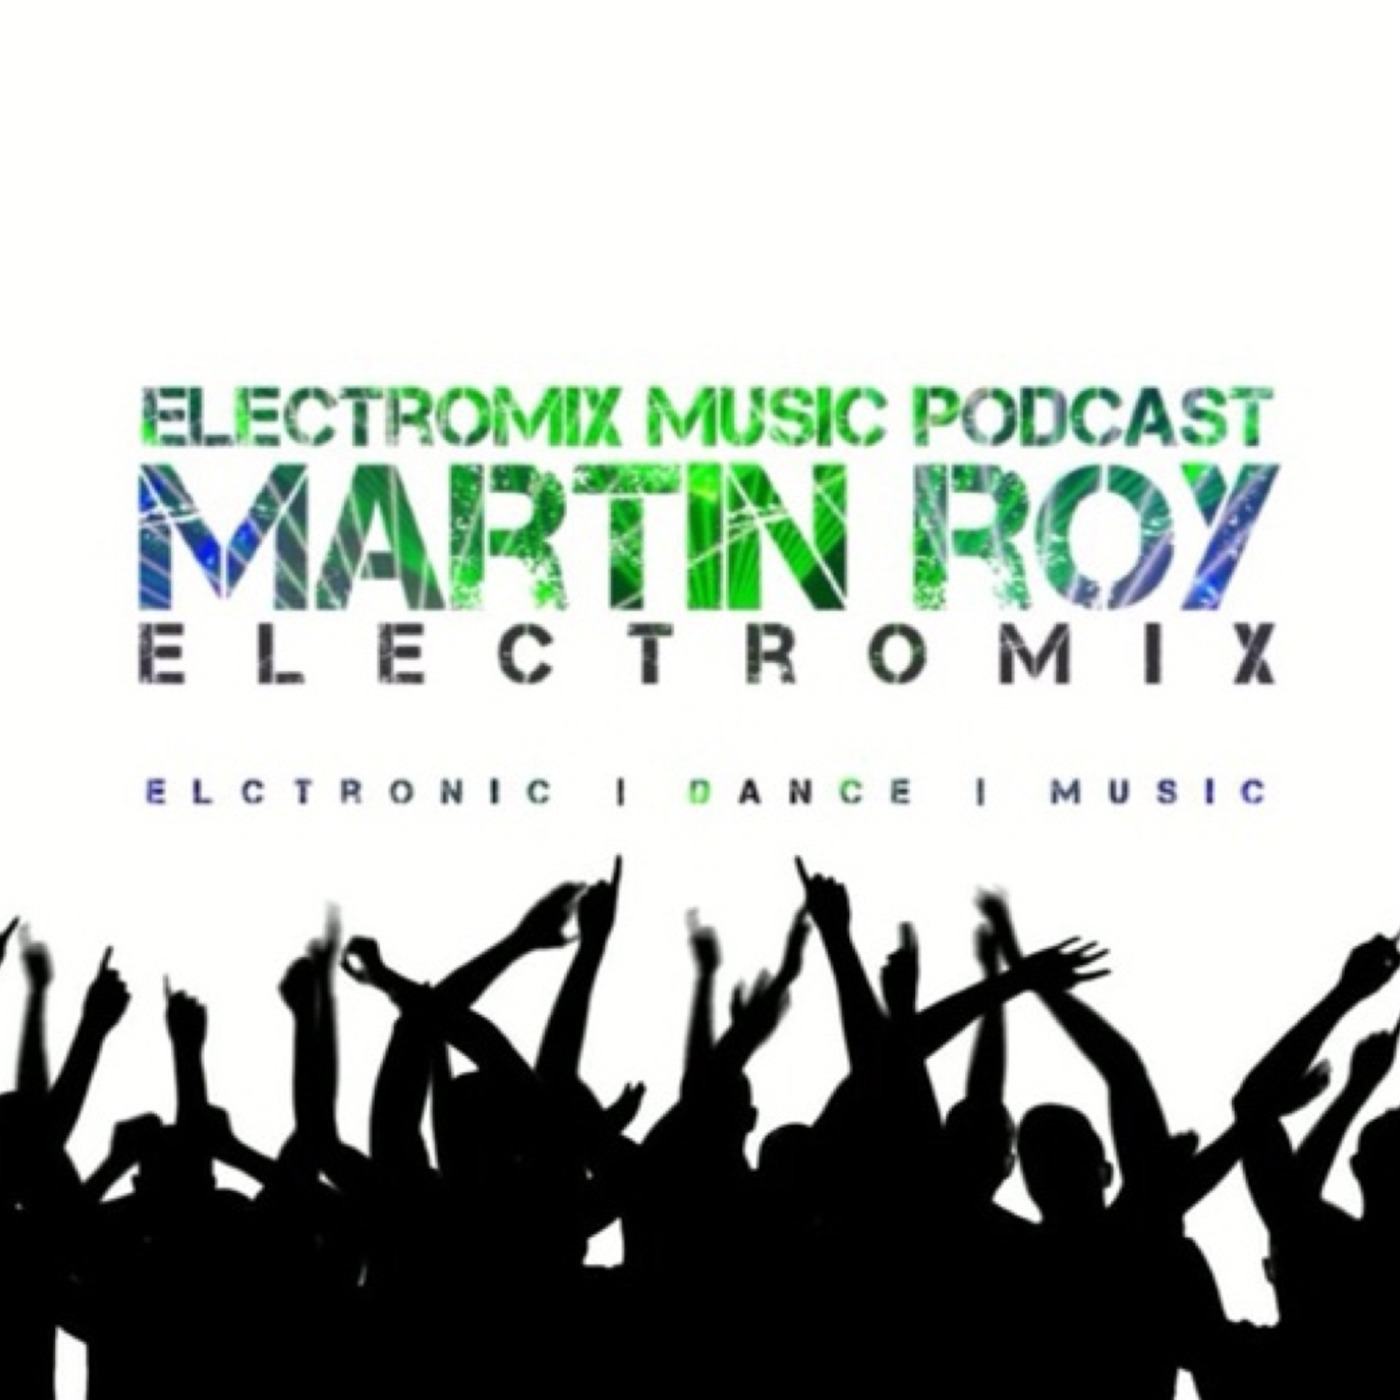 Electromix Music Podcast